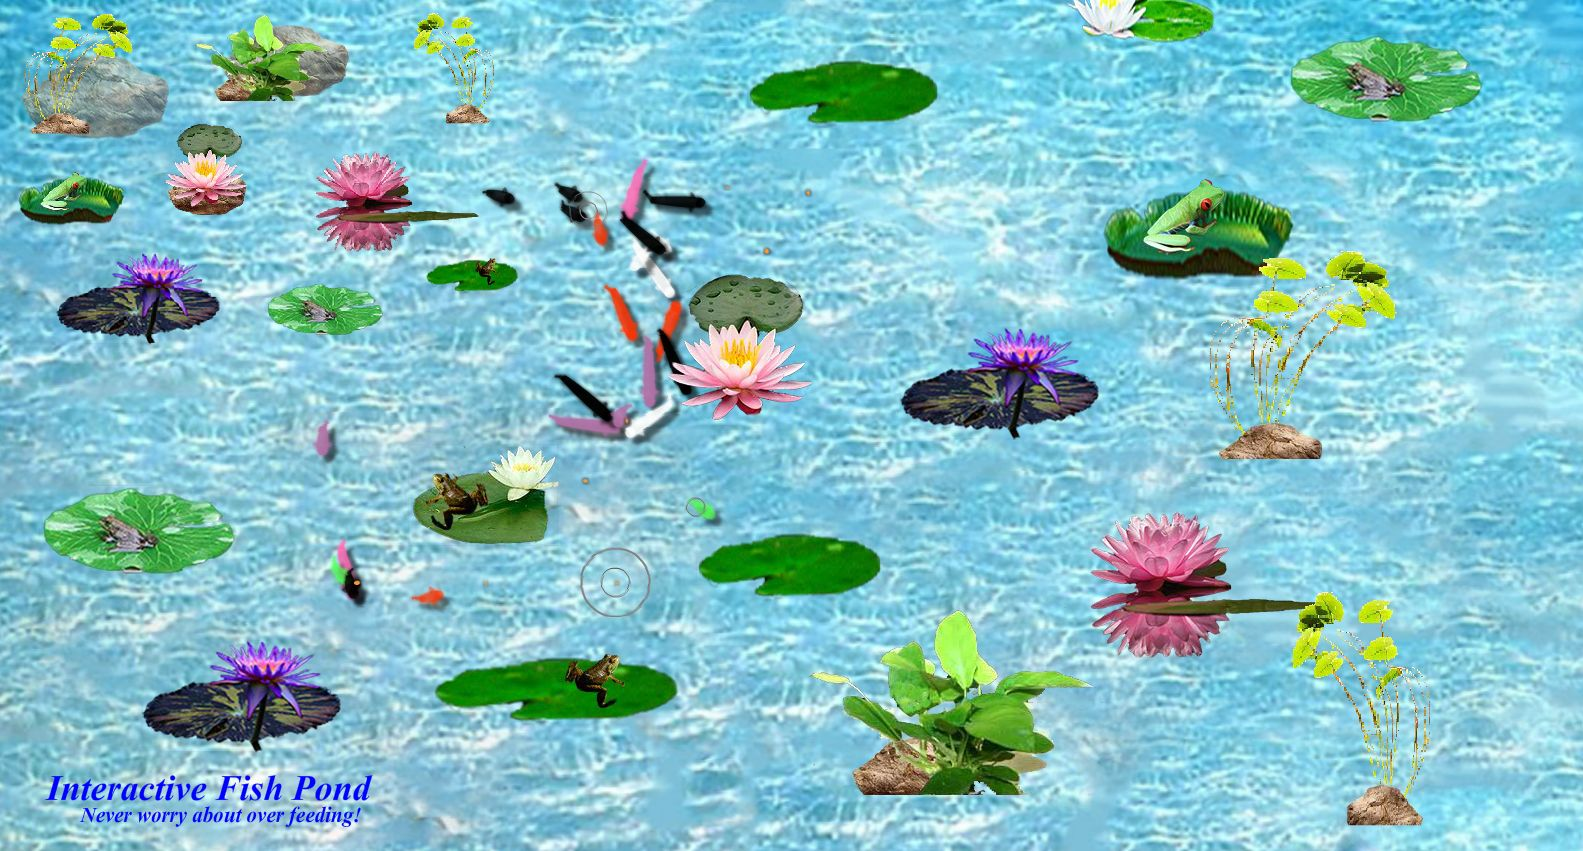 Live fish pond download 11street malaysia board games for Koi pond game online